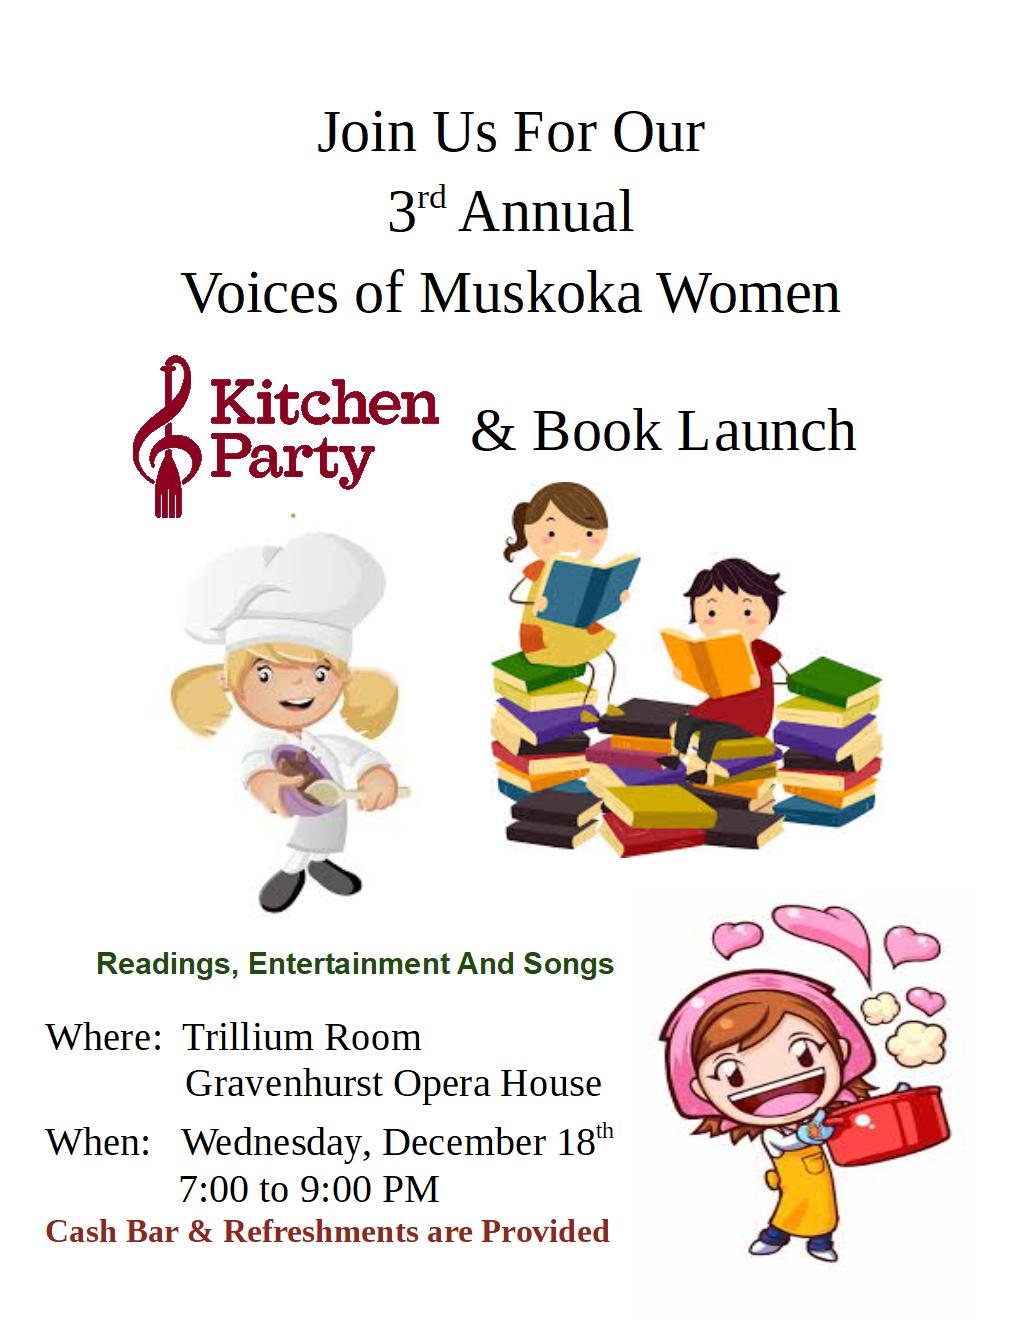 Promotional poster for the upcoming Voices of Muskoka Women Kitchen Party